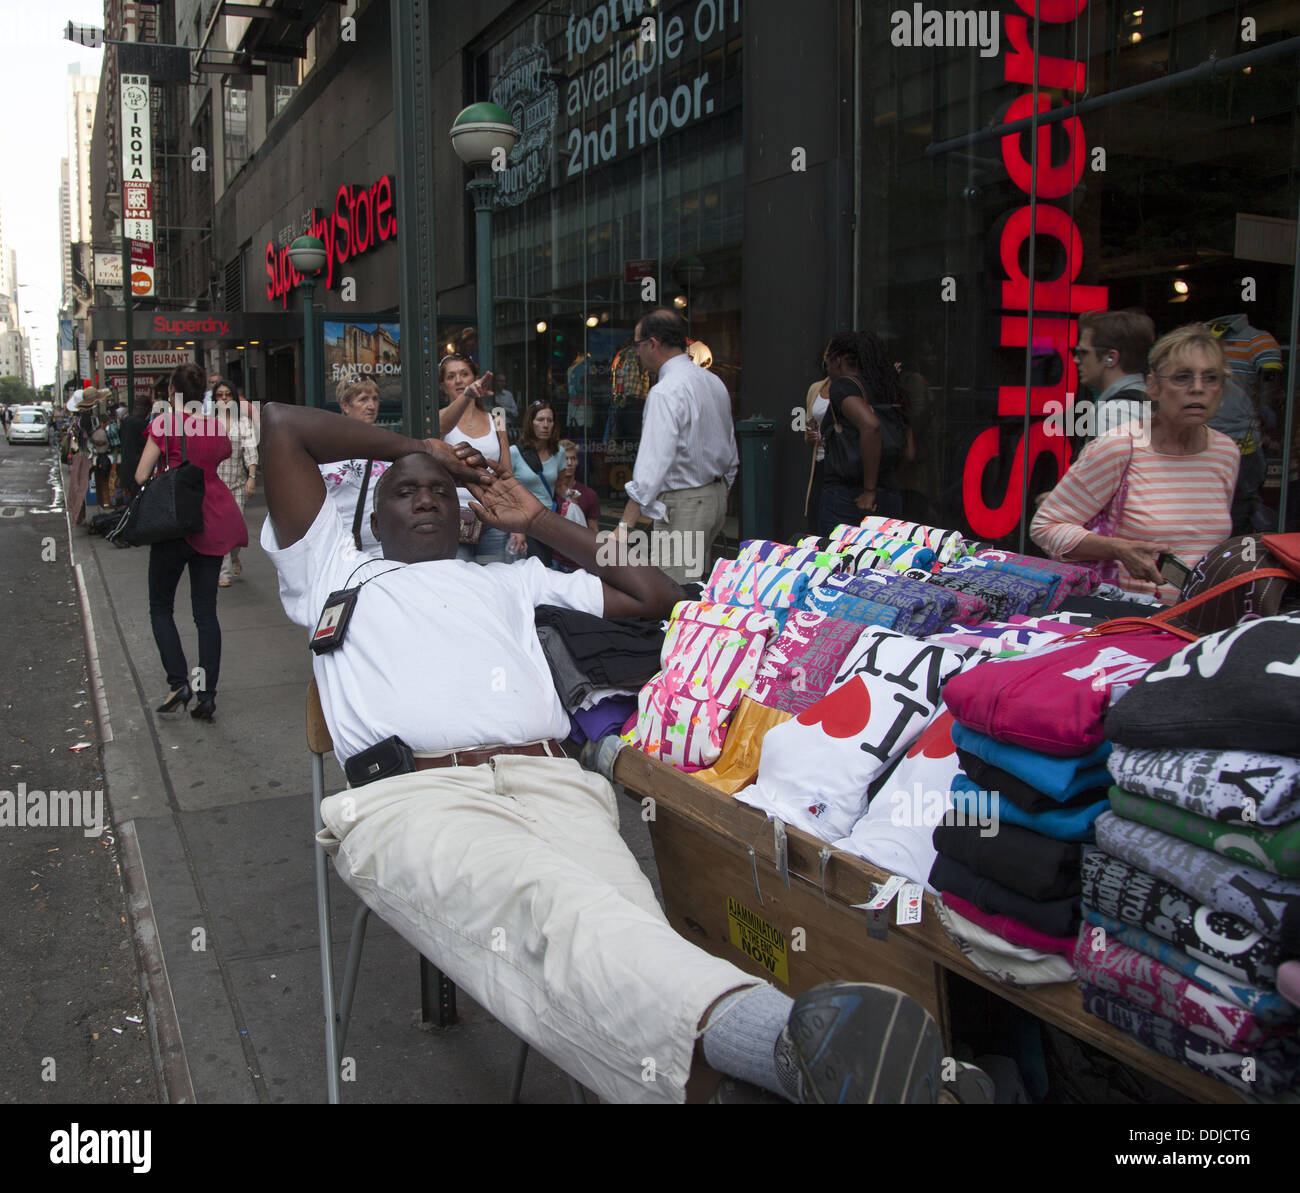 t-shirt vendor in a relaxed pose near Times Square in Manhattan, NYC. - Stock Image